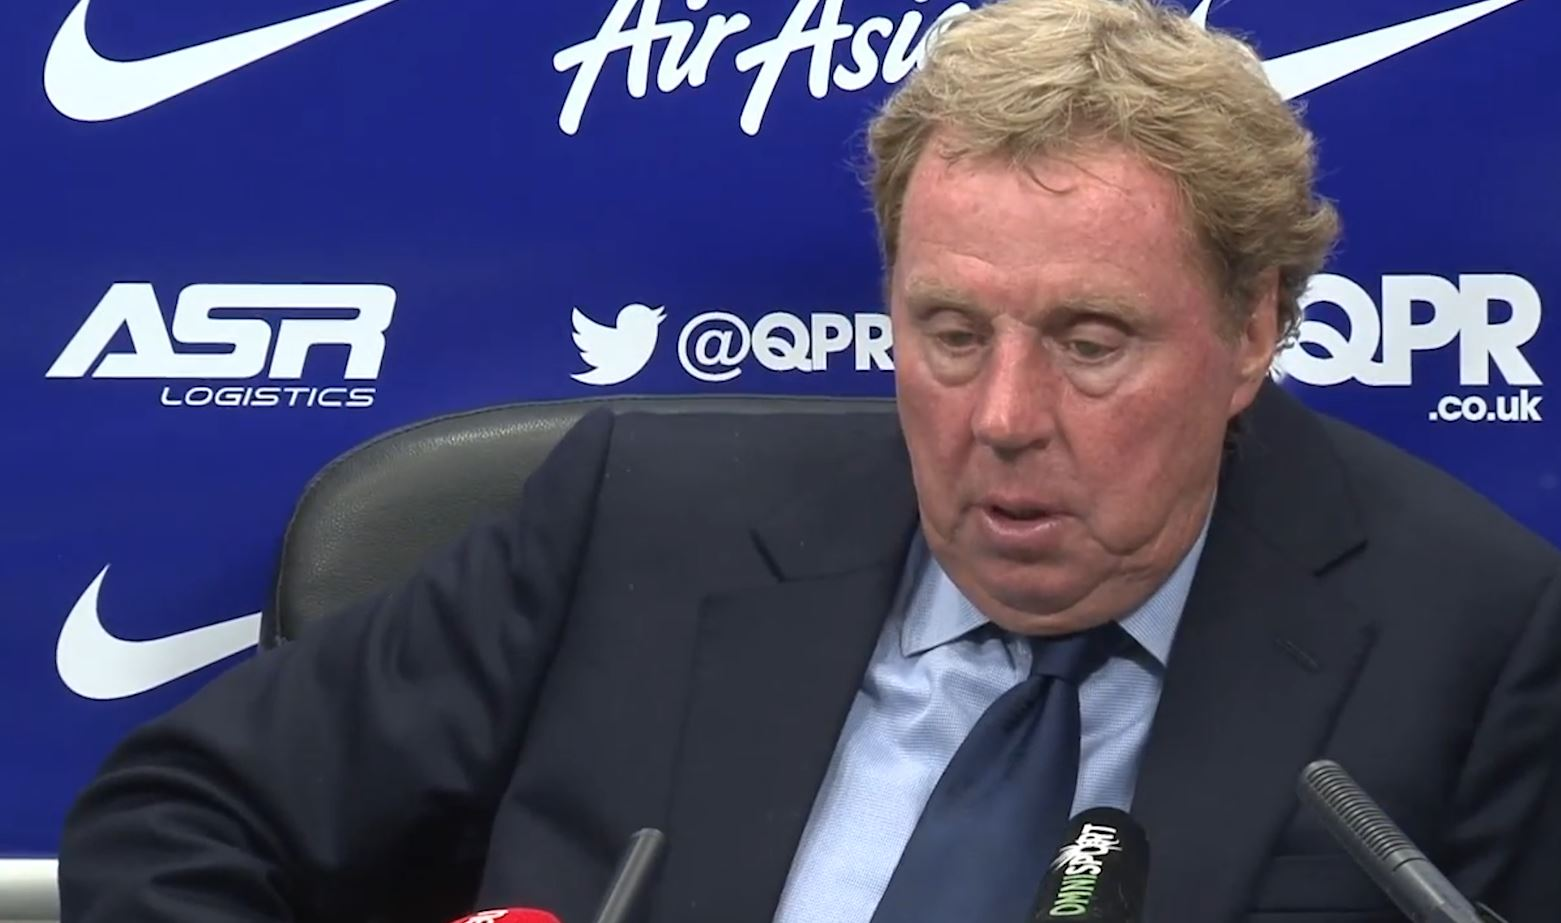 Harry Redknapp: Overweight Taarabt 'Not Fit to Play Football'